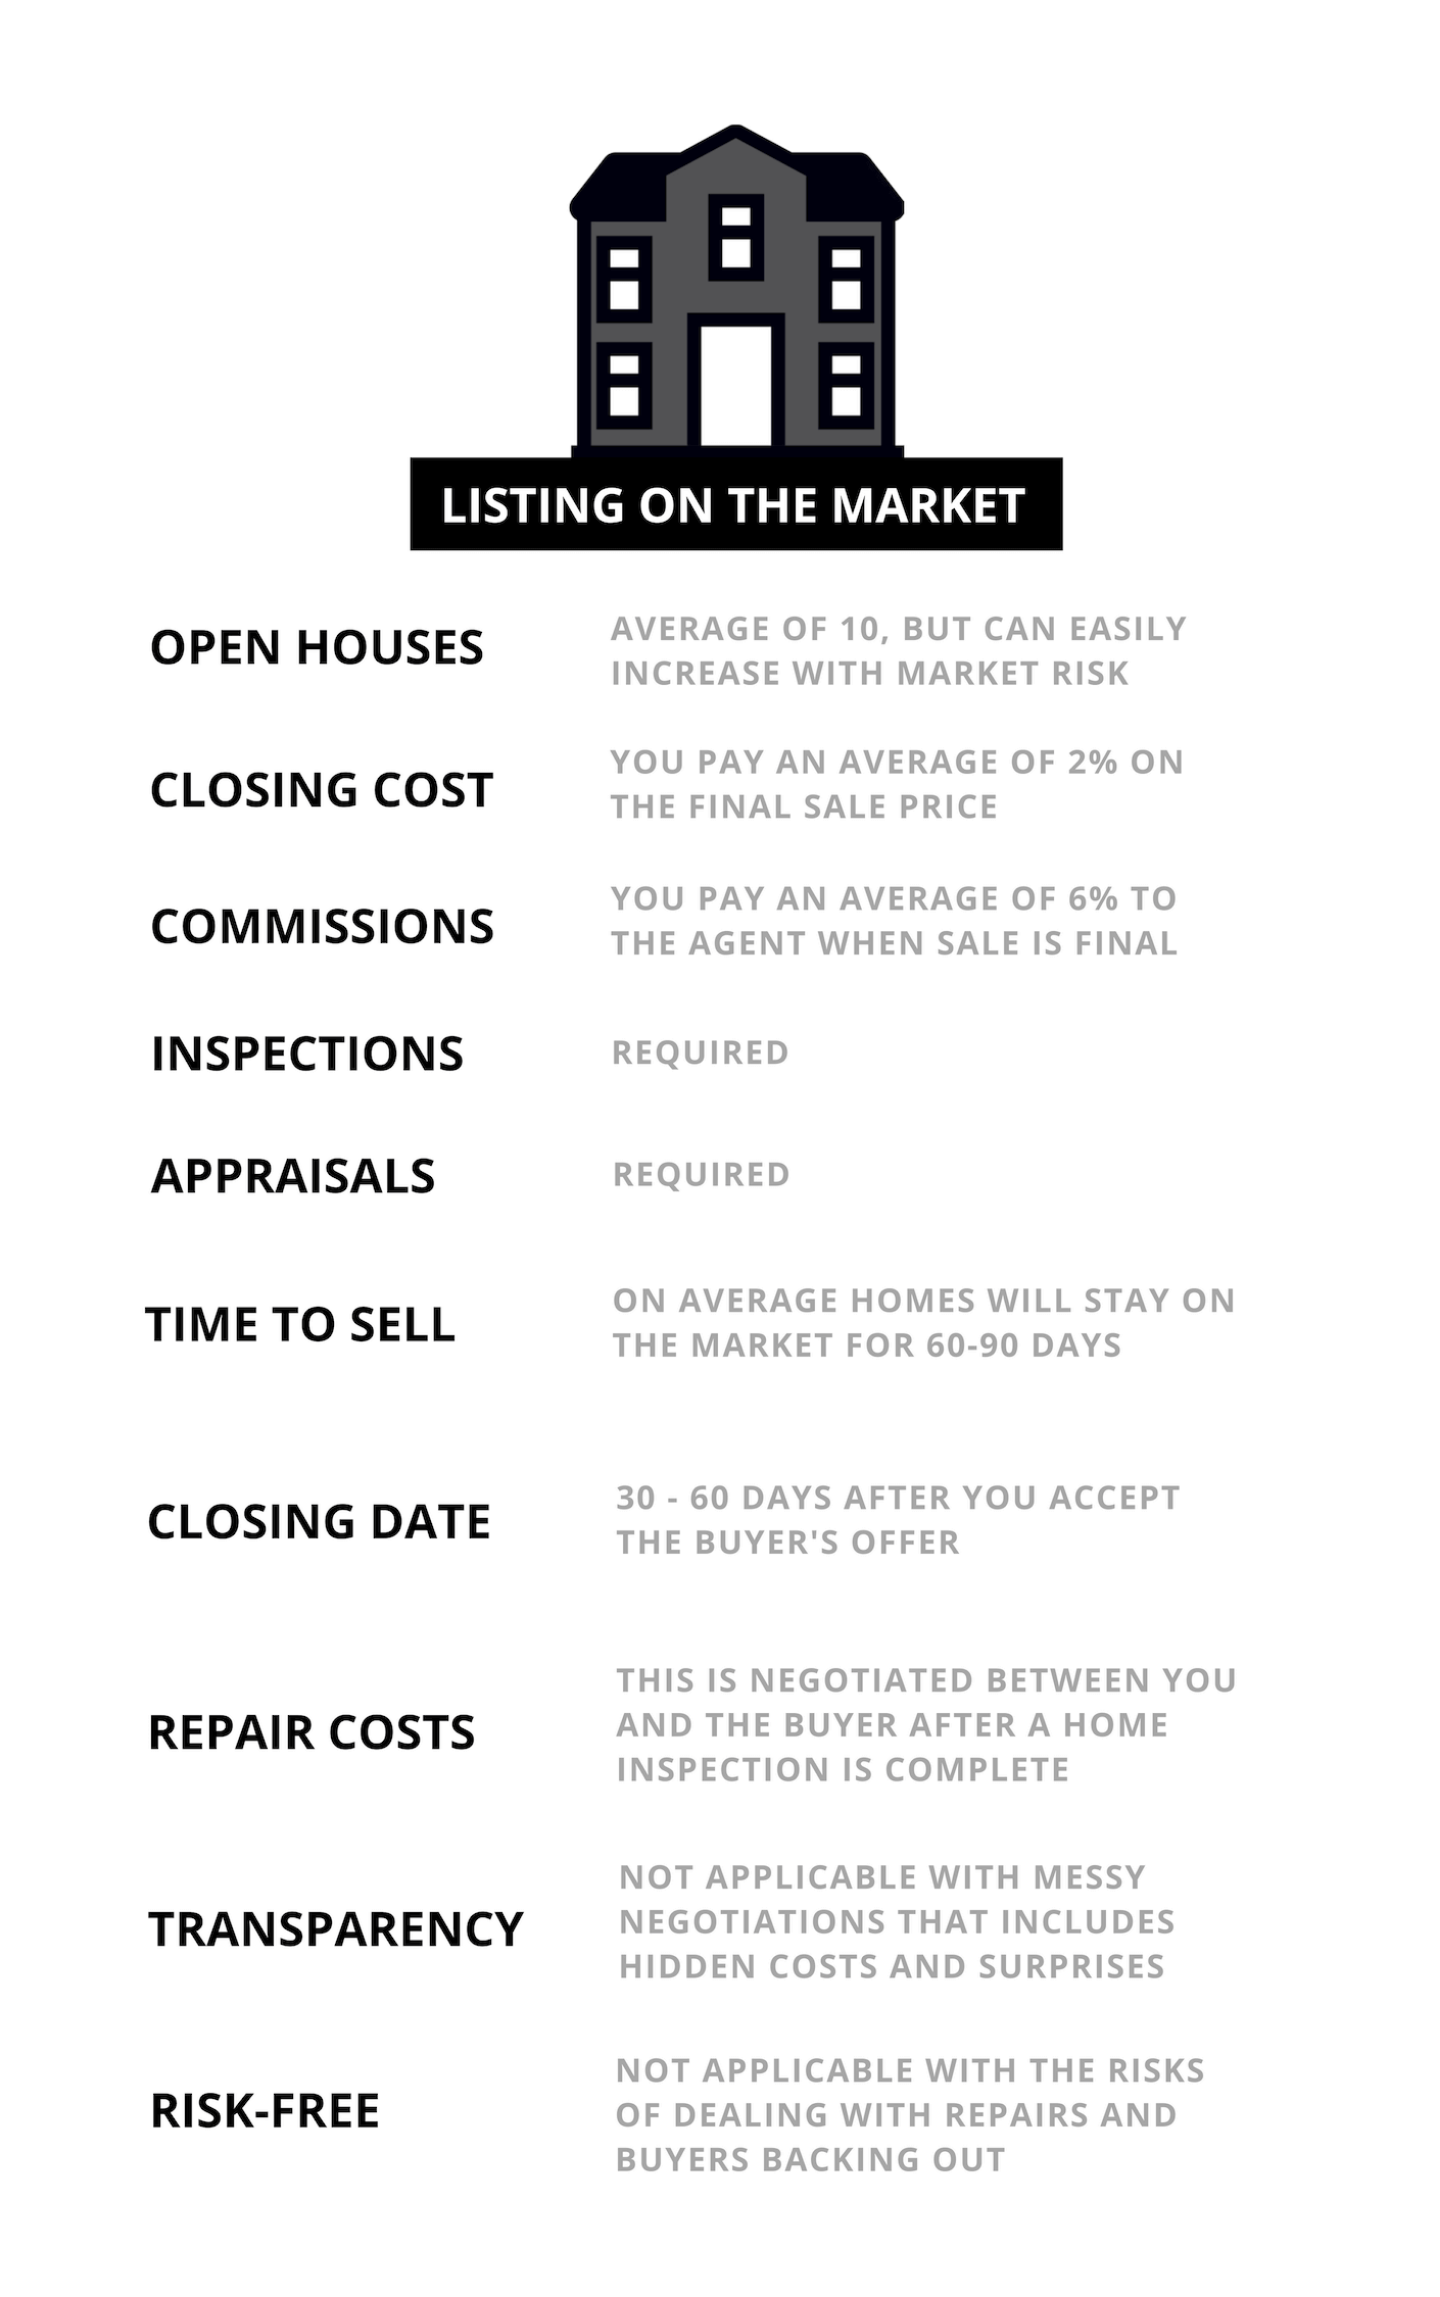 Properters.com - The disadvantages of selling your home on the market.